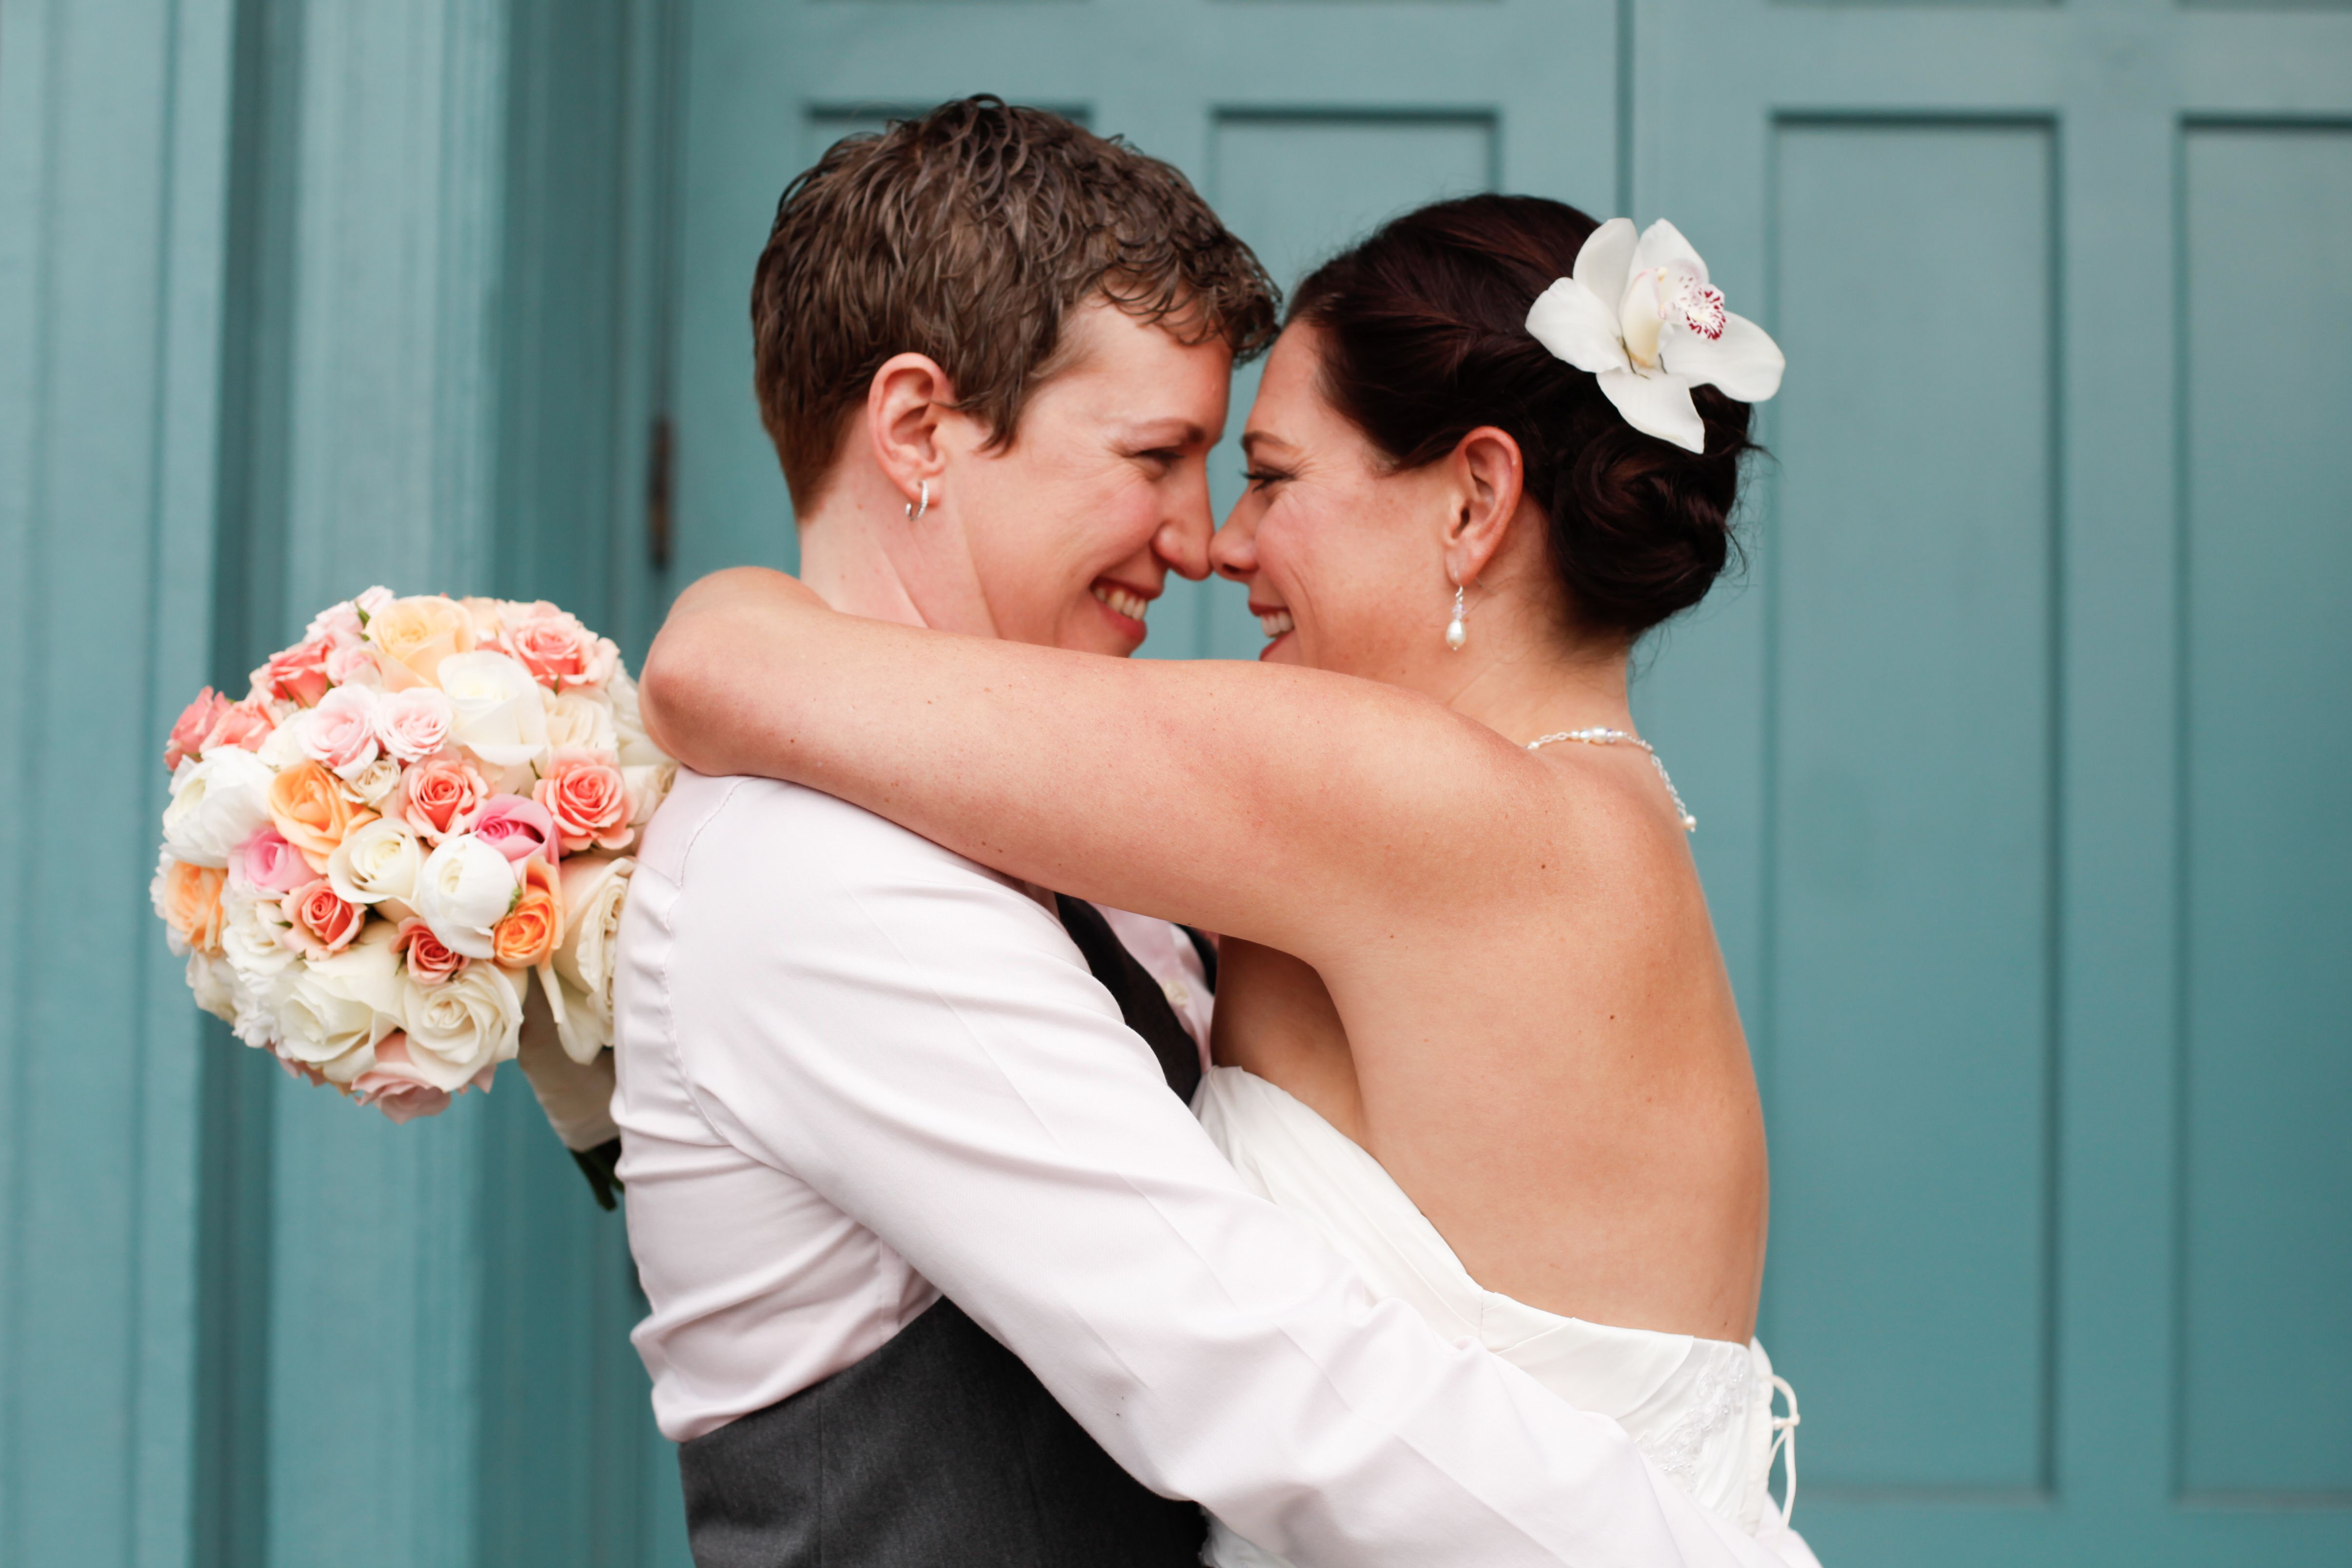 Do You Need Wedding Insurance: How To Get A Marriage License In Northeast Ohio